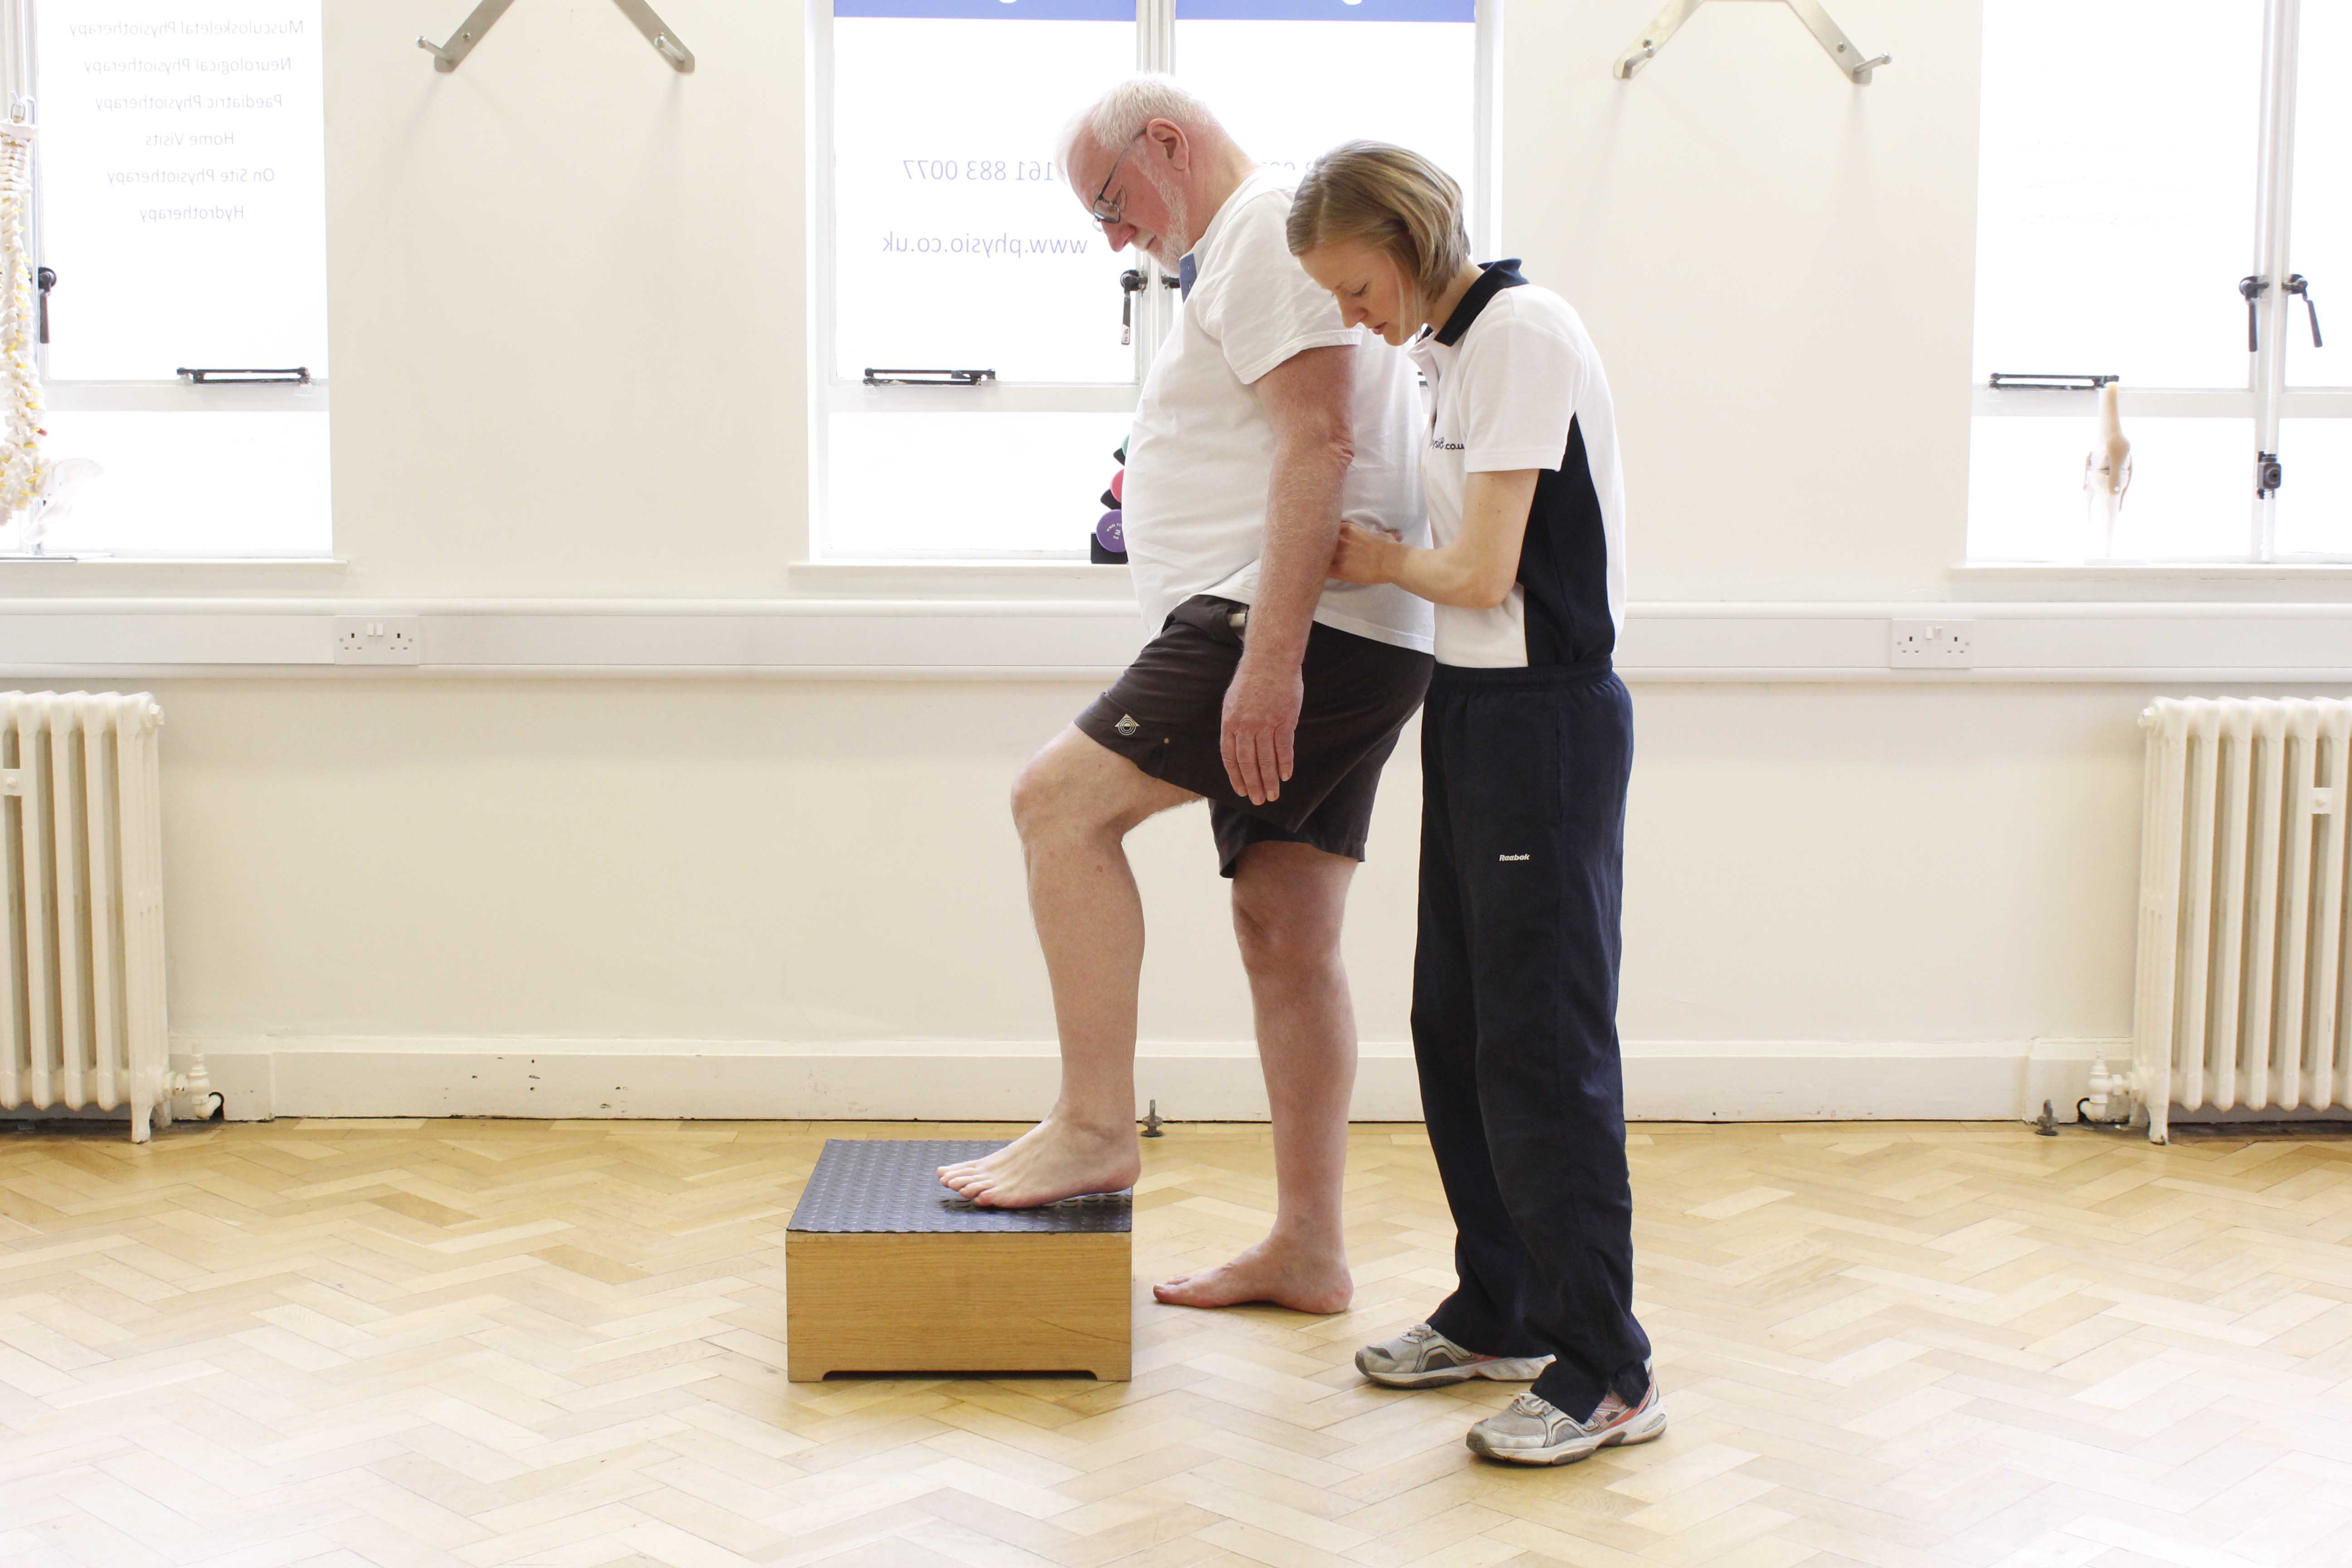 Functional mobility exercises assisted by a specialist neuro physiotherapist